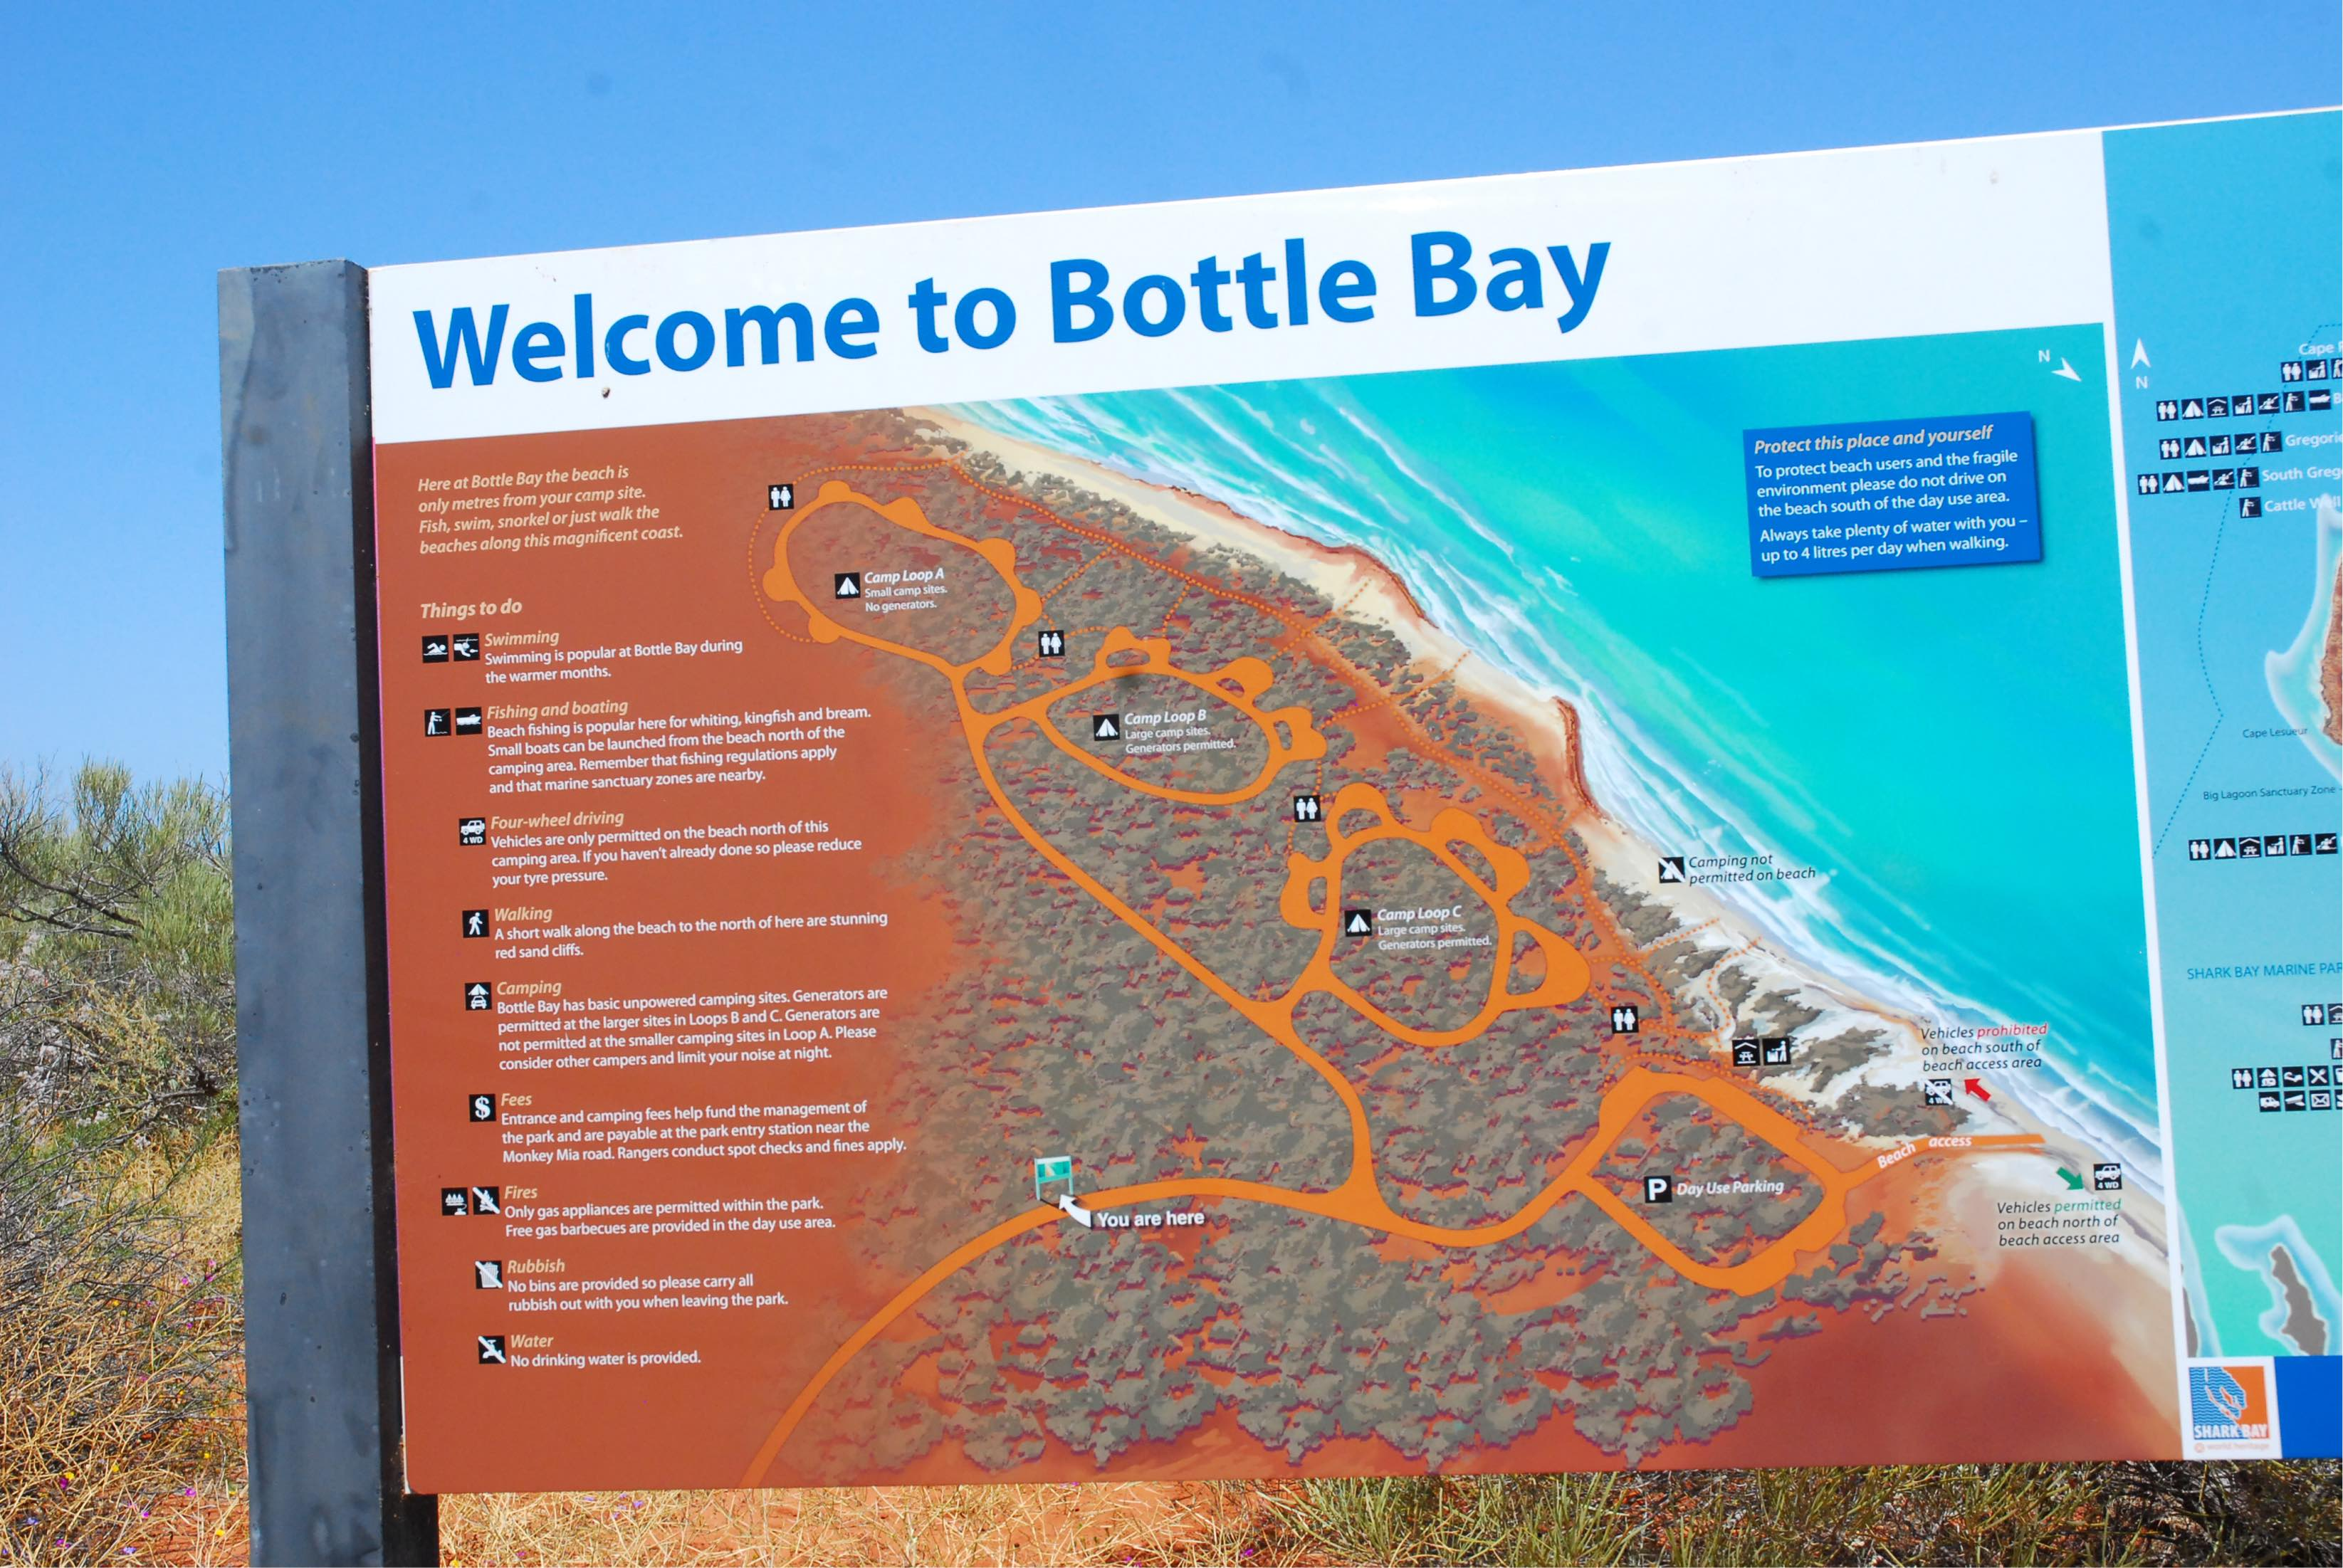 Bottle bay